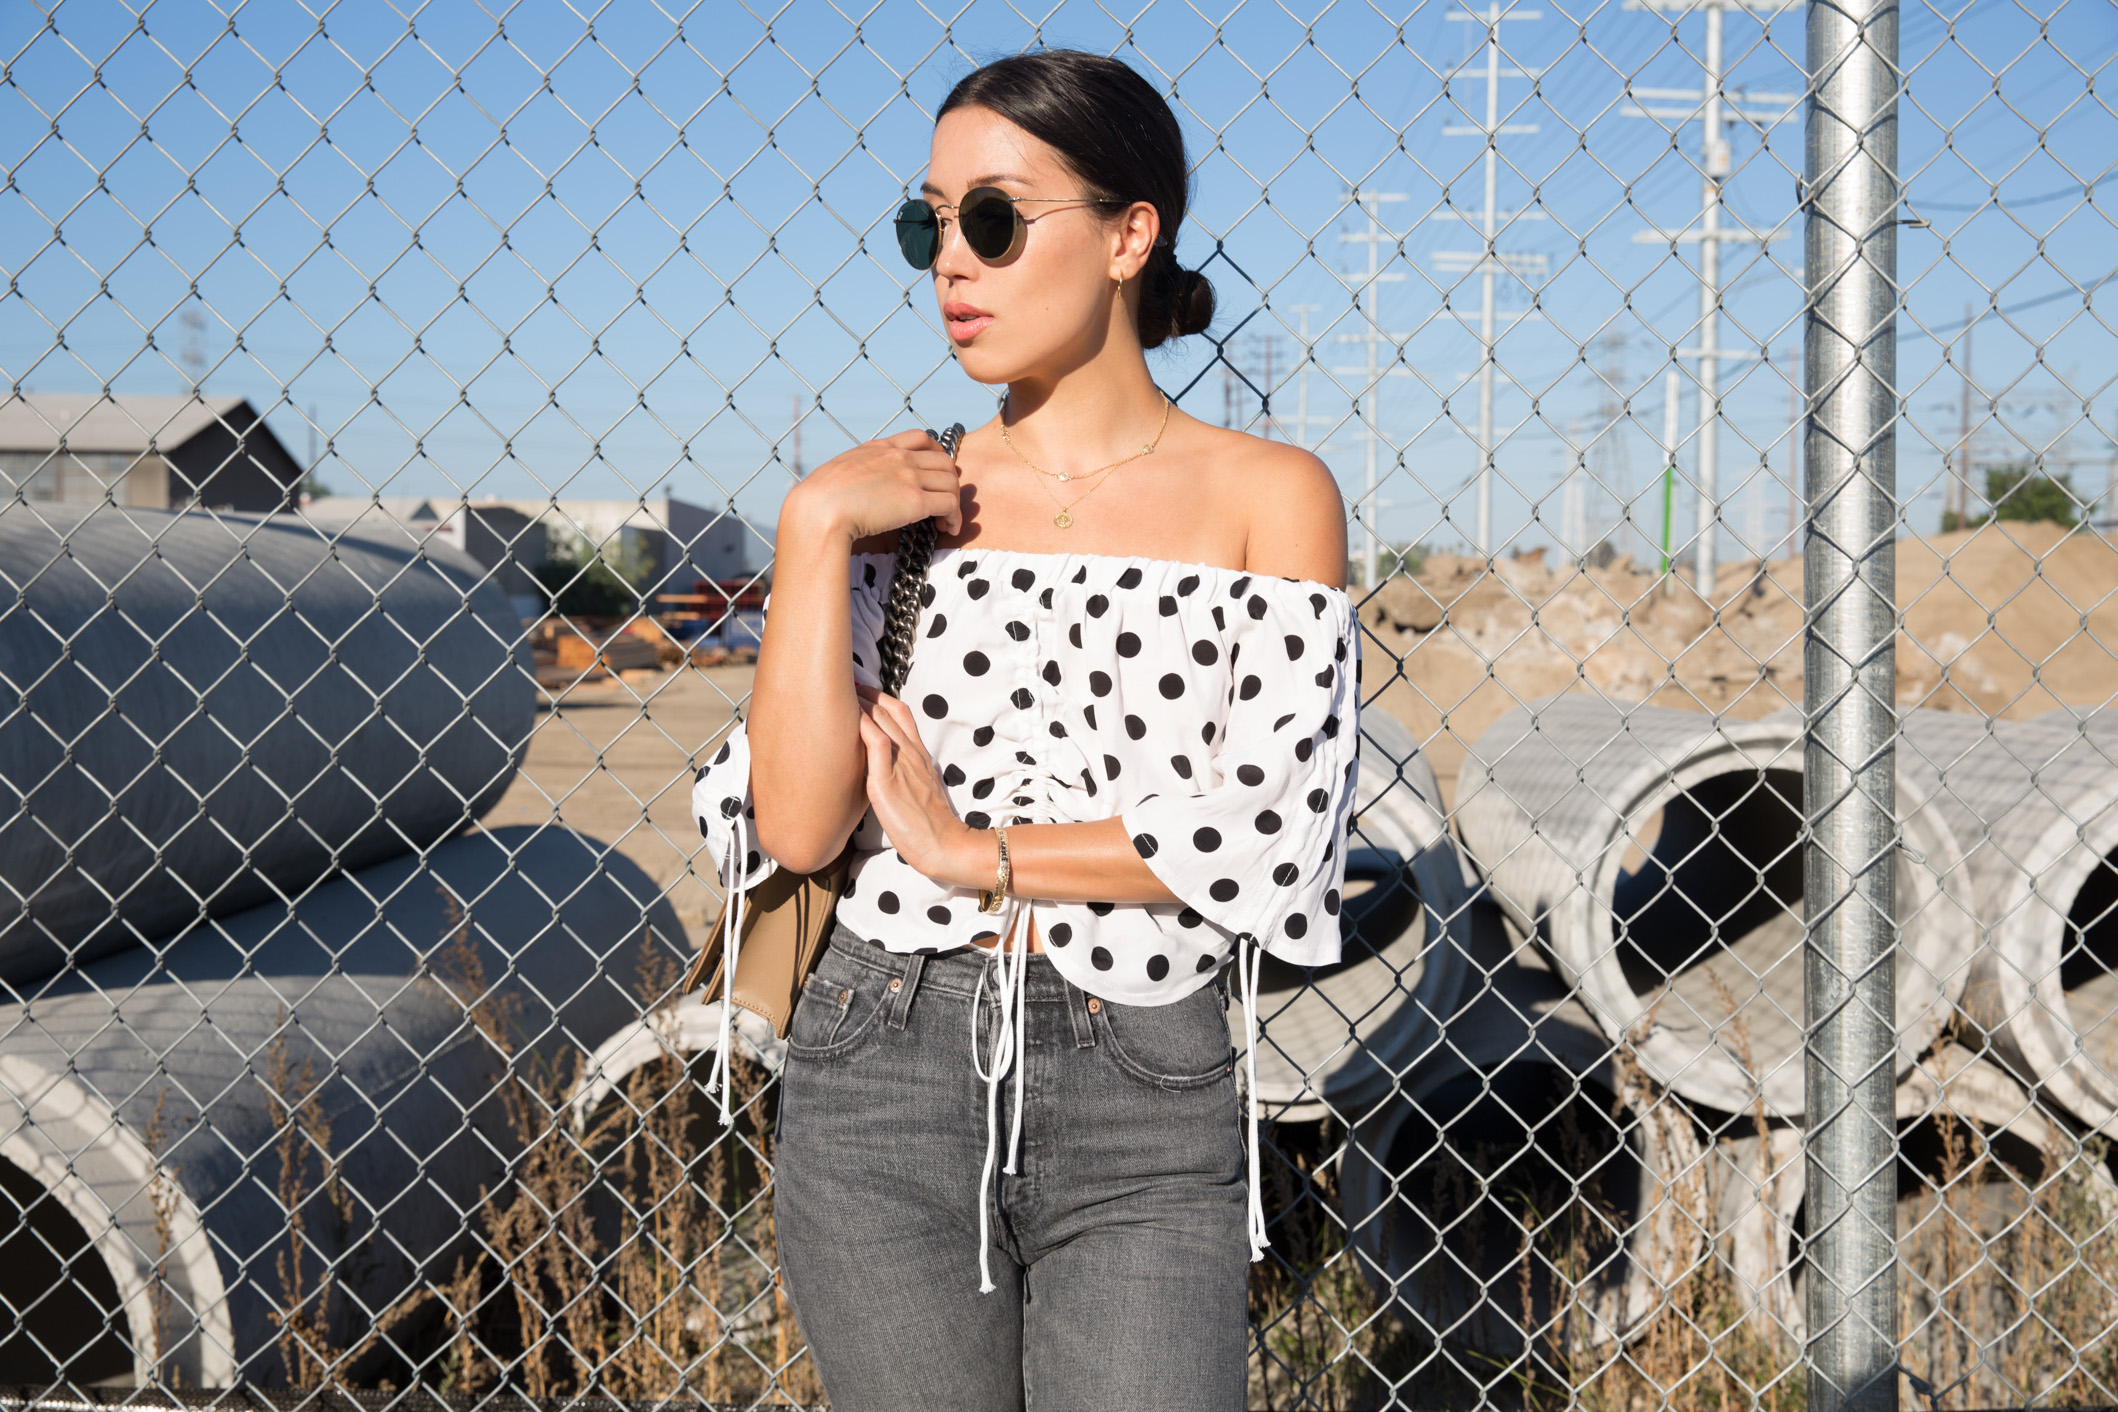 LOVE OR MONEY by Emily Tong wearing polka dot crop top and jeans